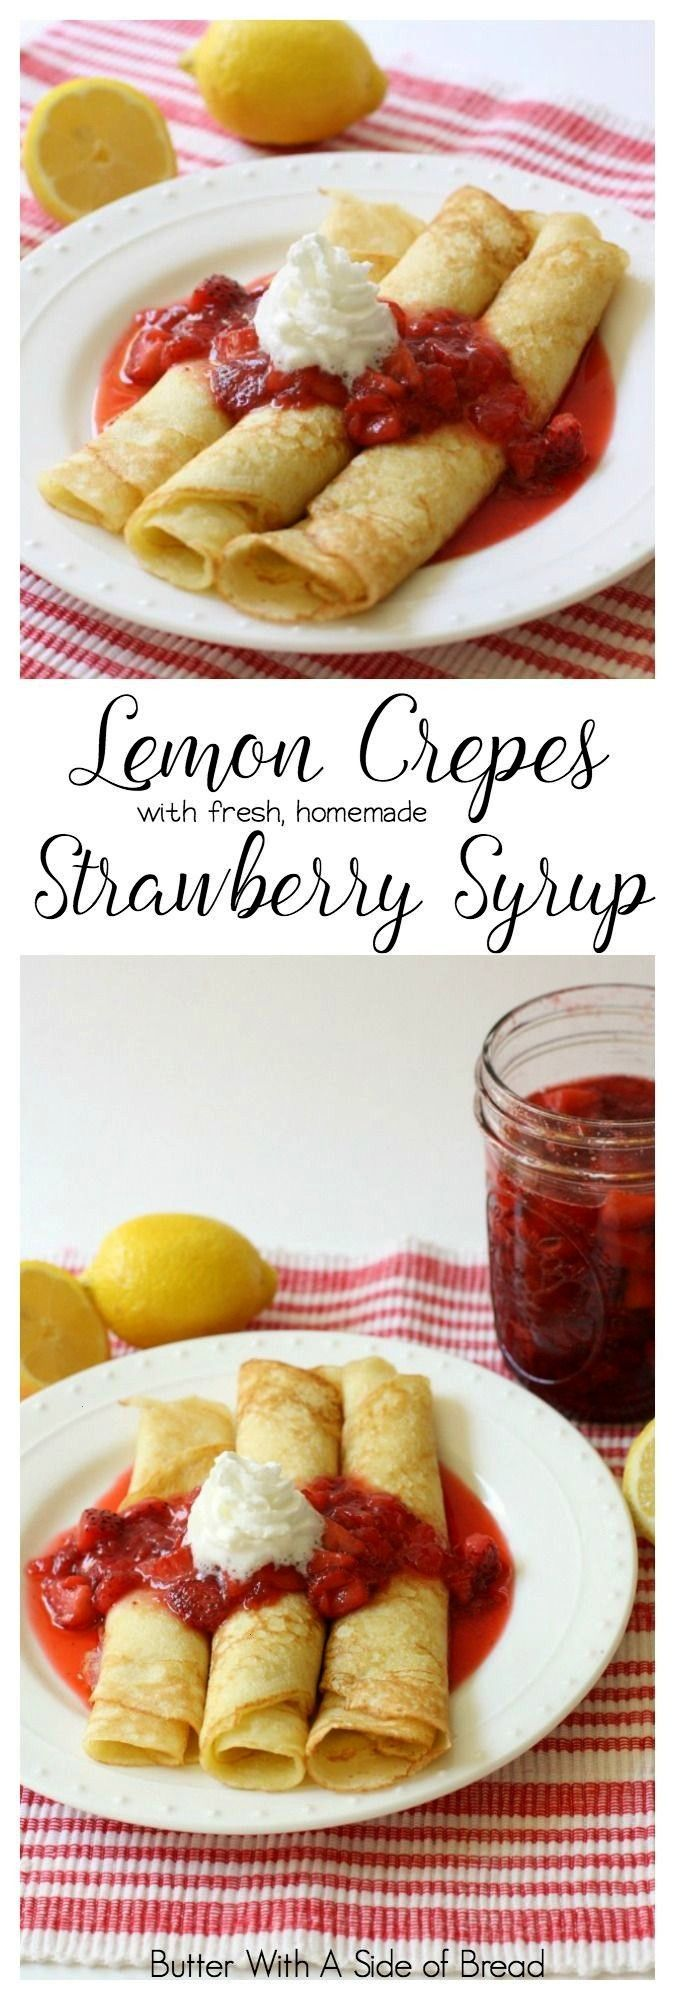 Crepes with Strawberry Syrup - Butter With A Side of Bread - Food   Lemon Crepes with Strawberry Sy